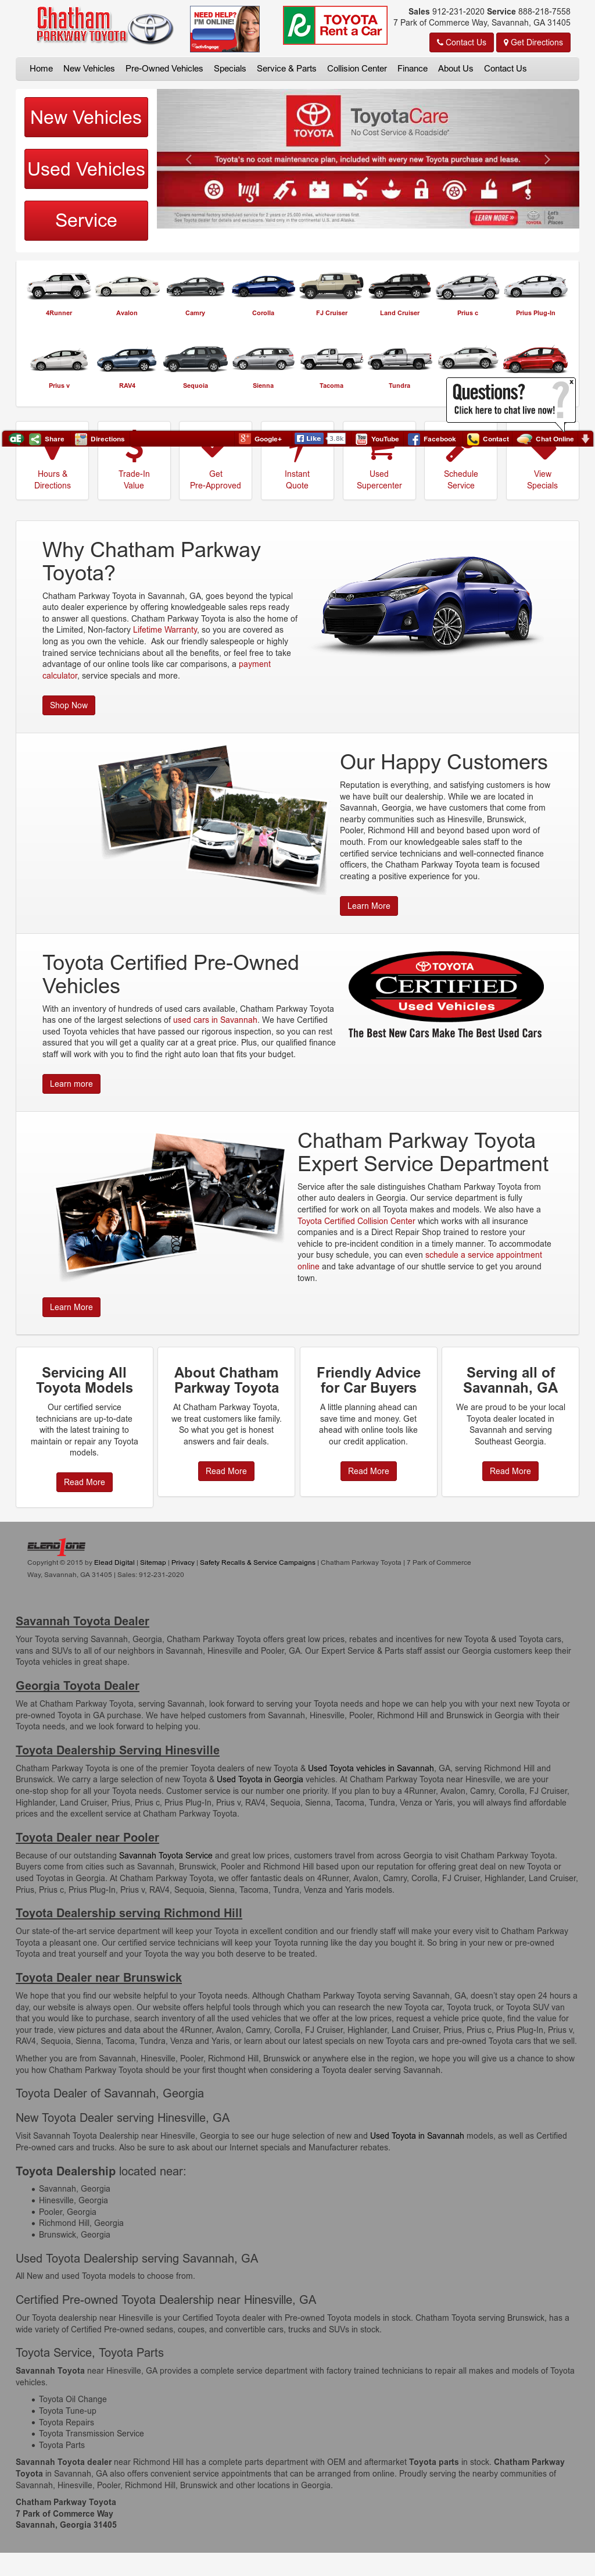 Chatham Parkway Toyota >> Chatham Parkway Toyota Competitors Revenue And Employees Owler